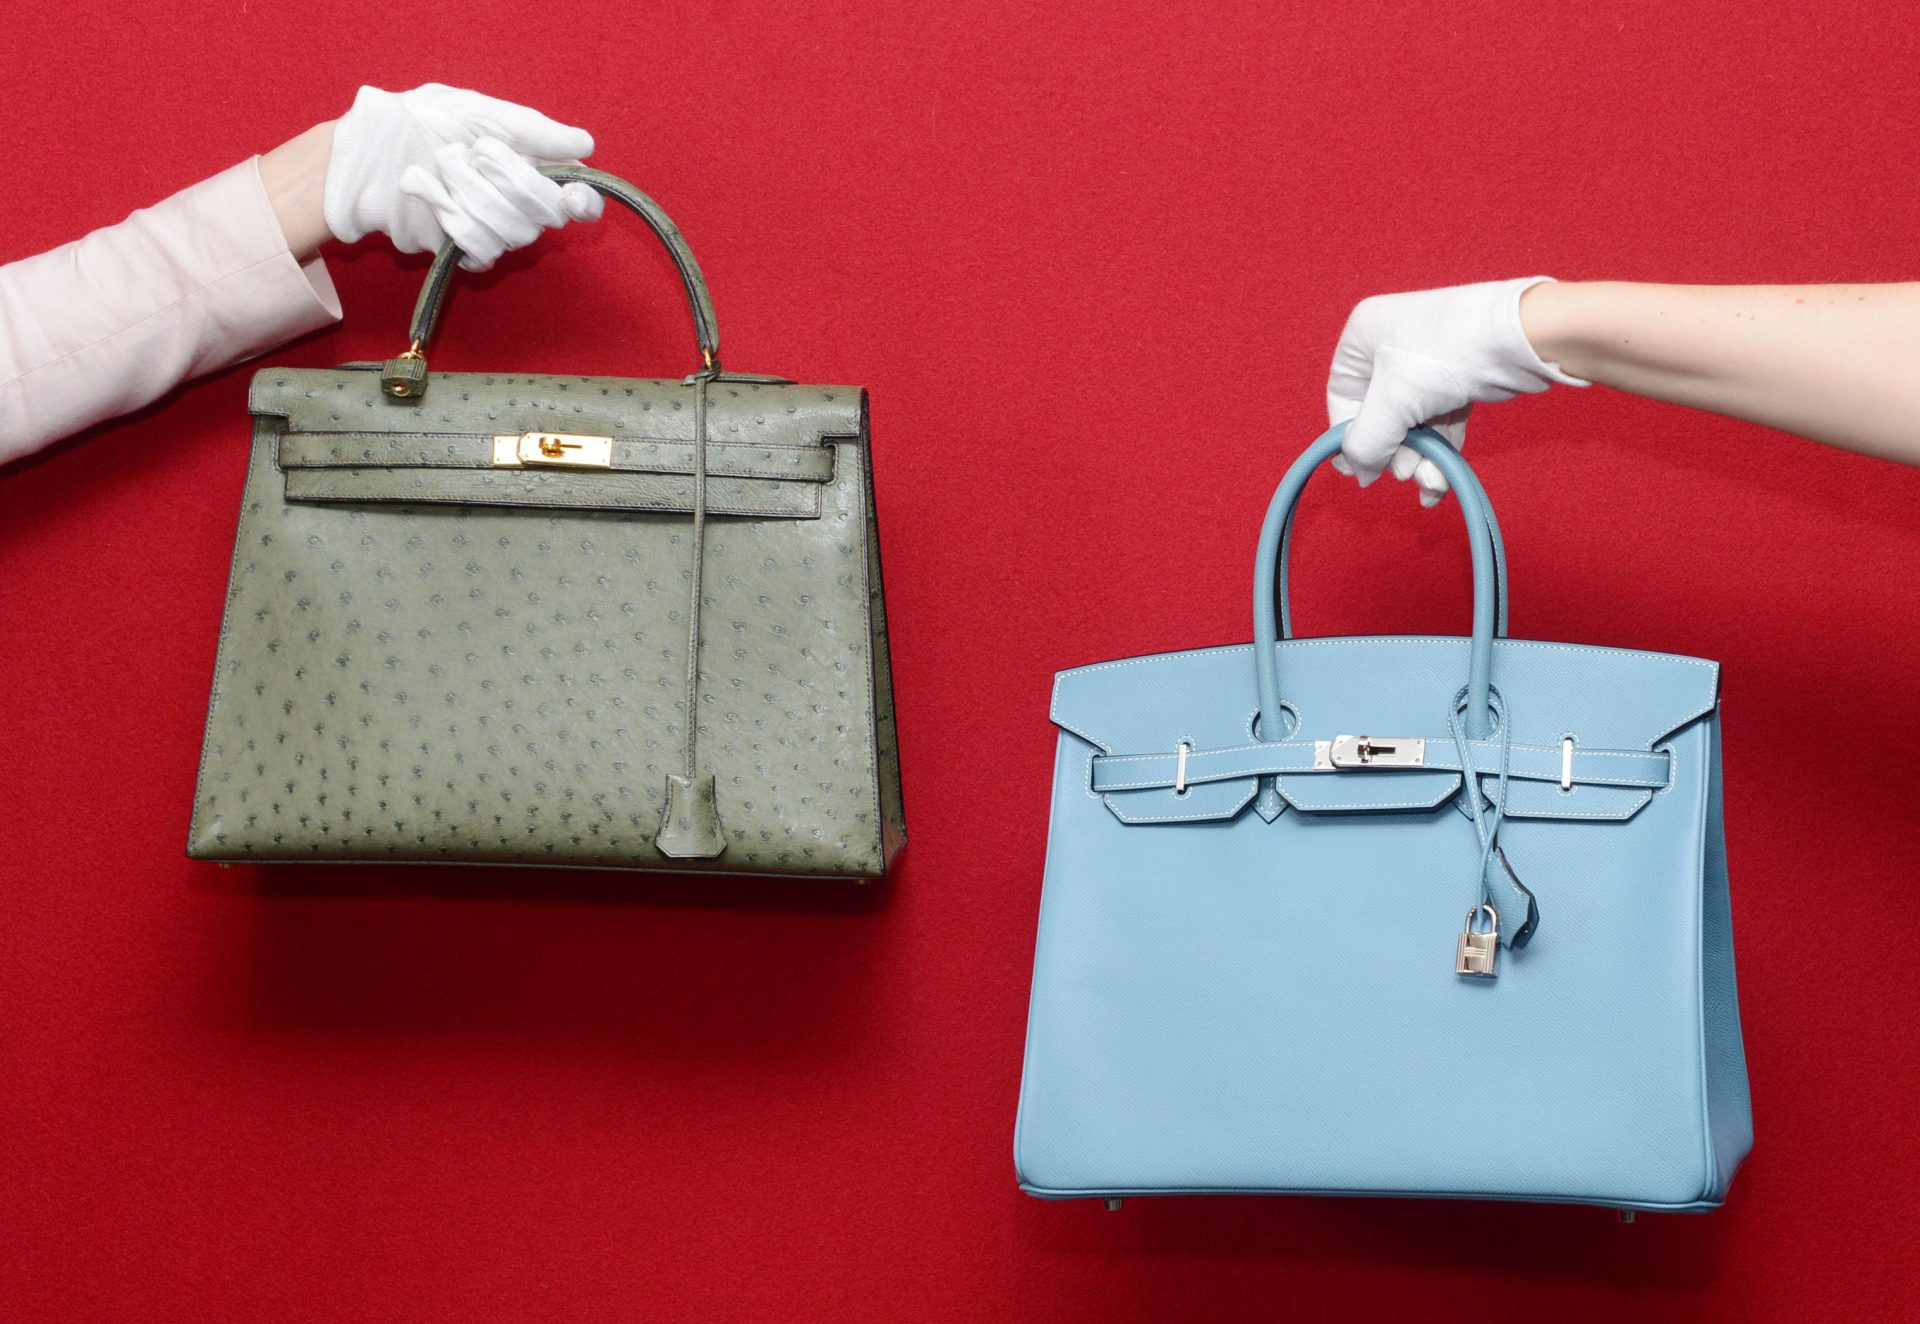 HERMÈS BIRKIN:经典包包背后的历史 THE HISTORY BEHIND THE ICONIC HERMÈS BIRKIN BAG